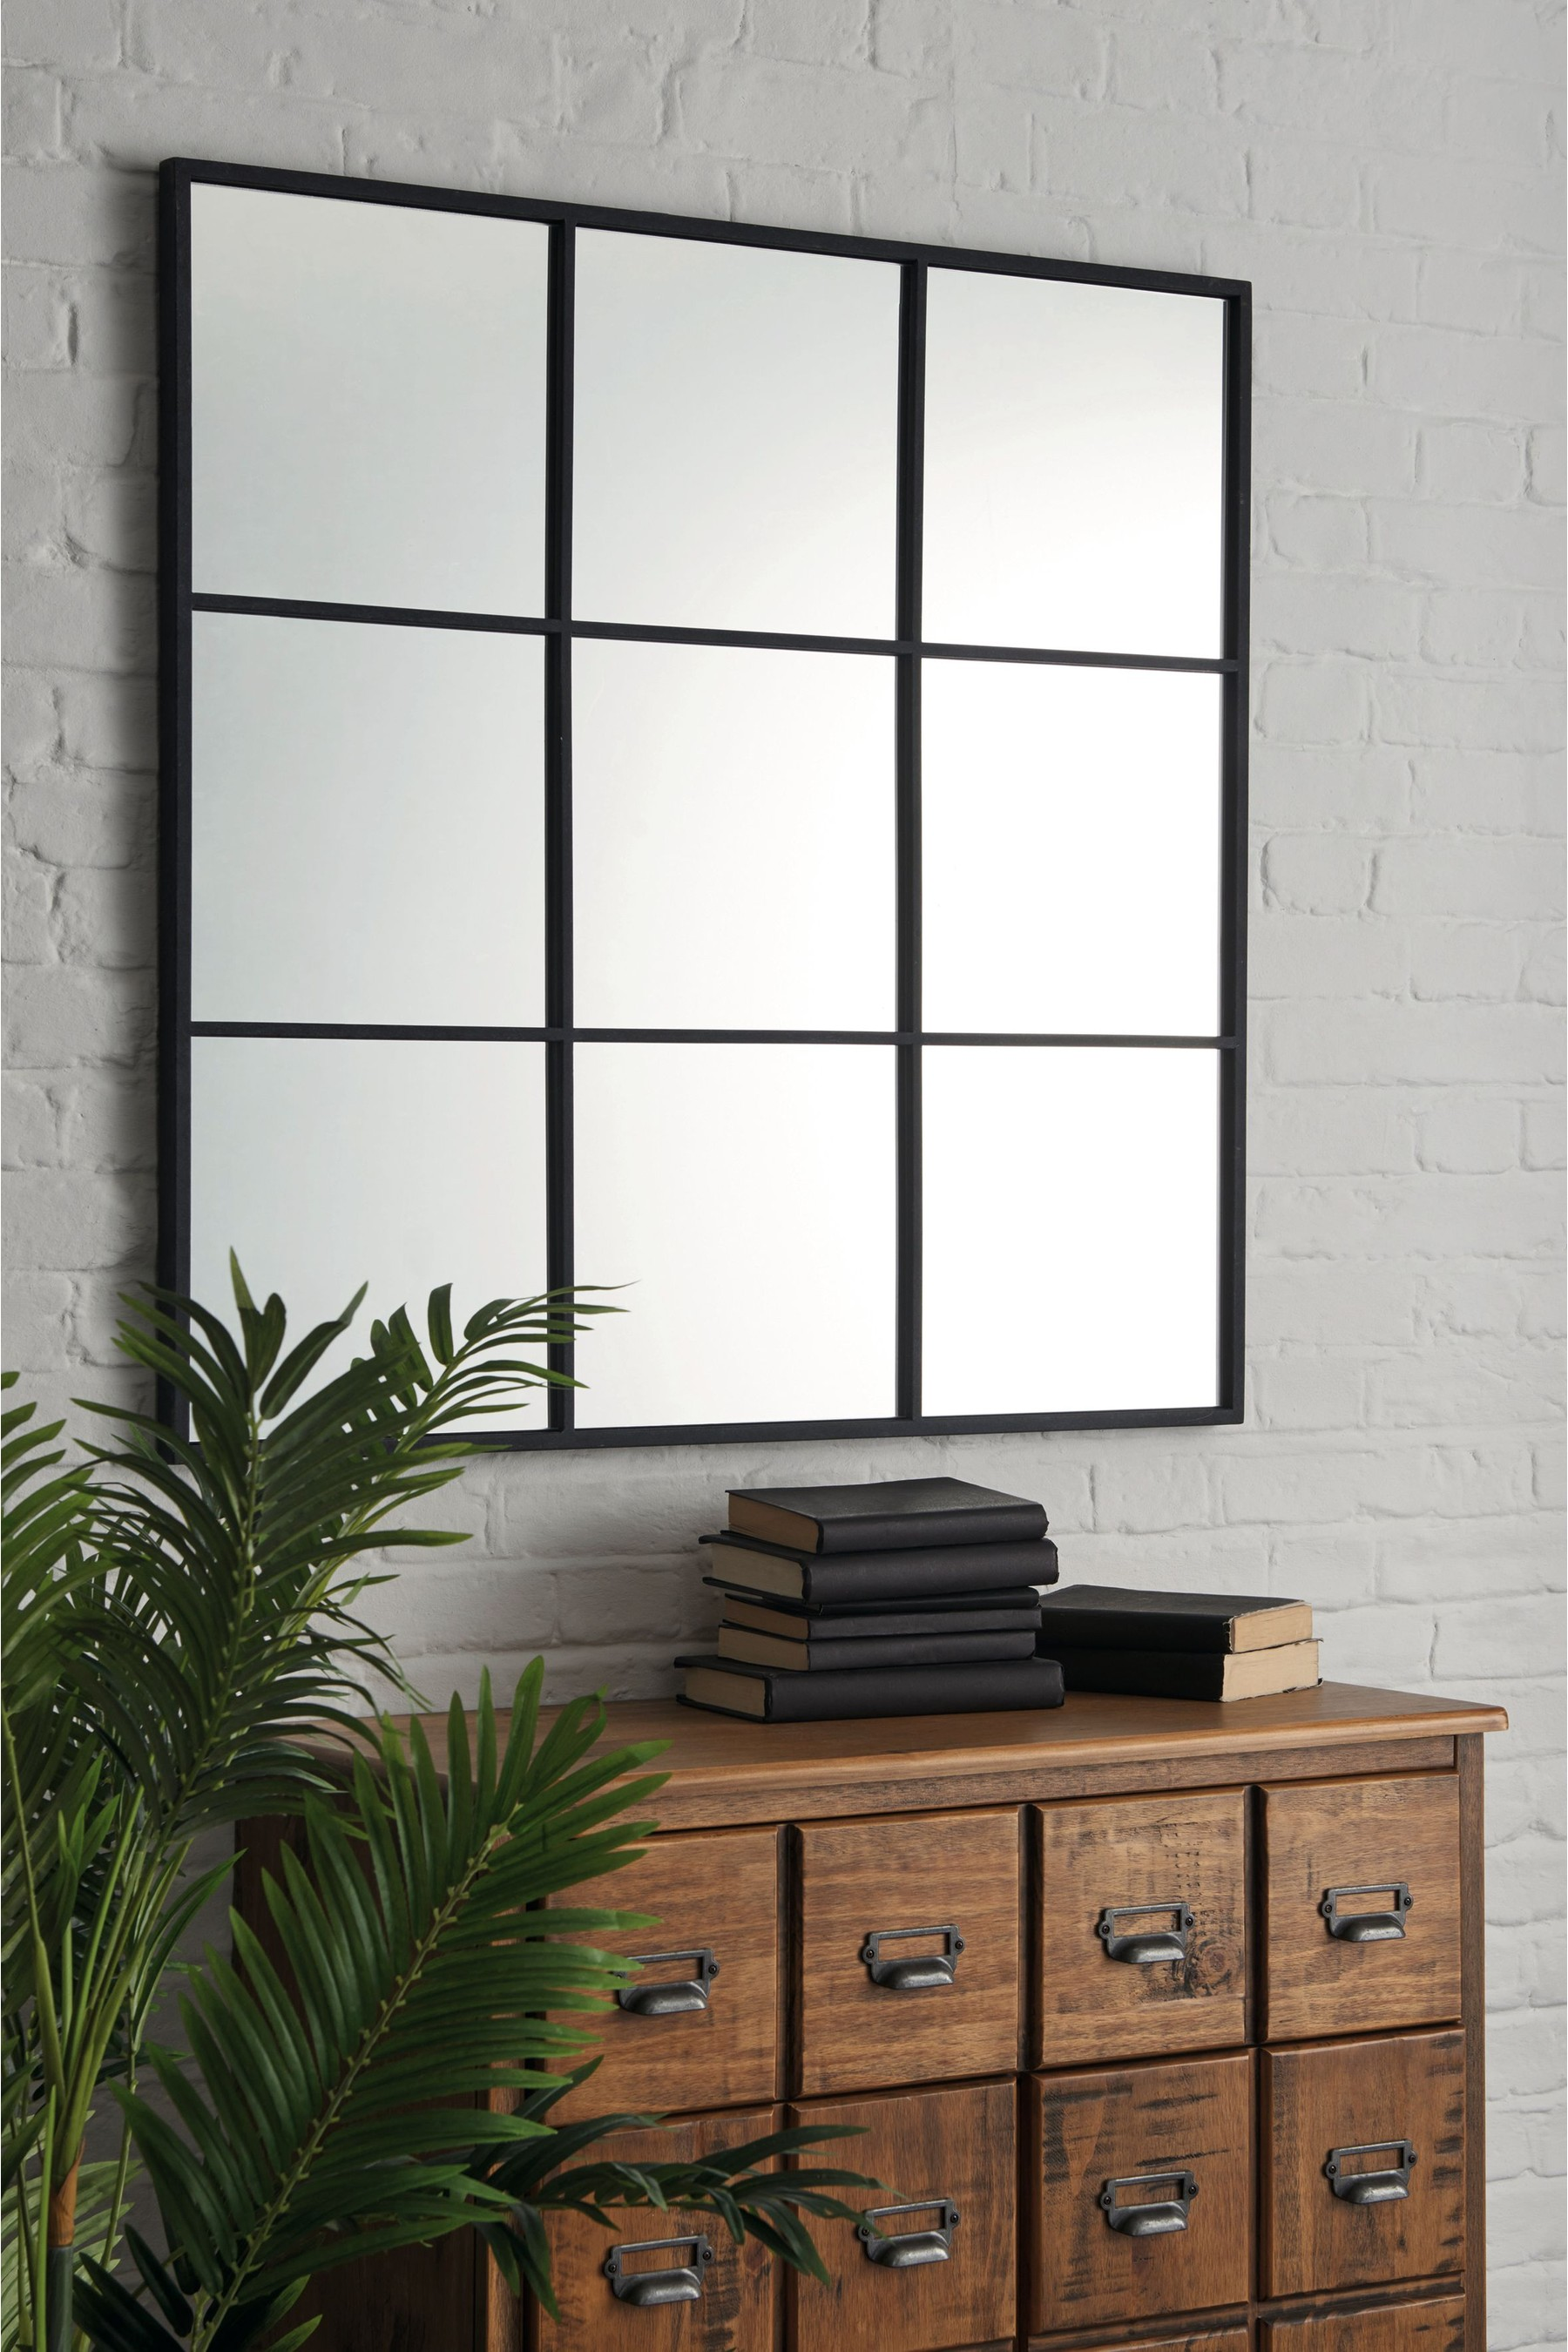 Why spend a whooping £150 at Next for this window-style mirror...